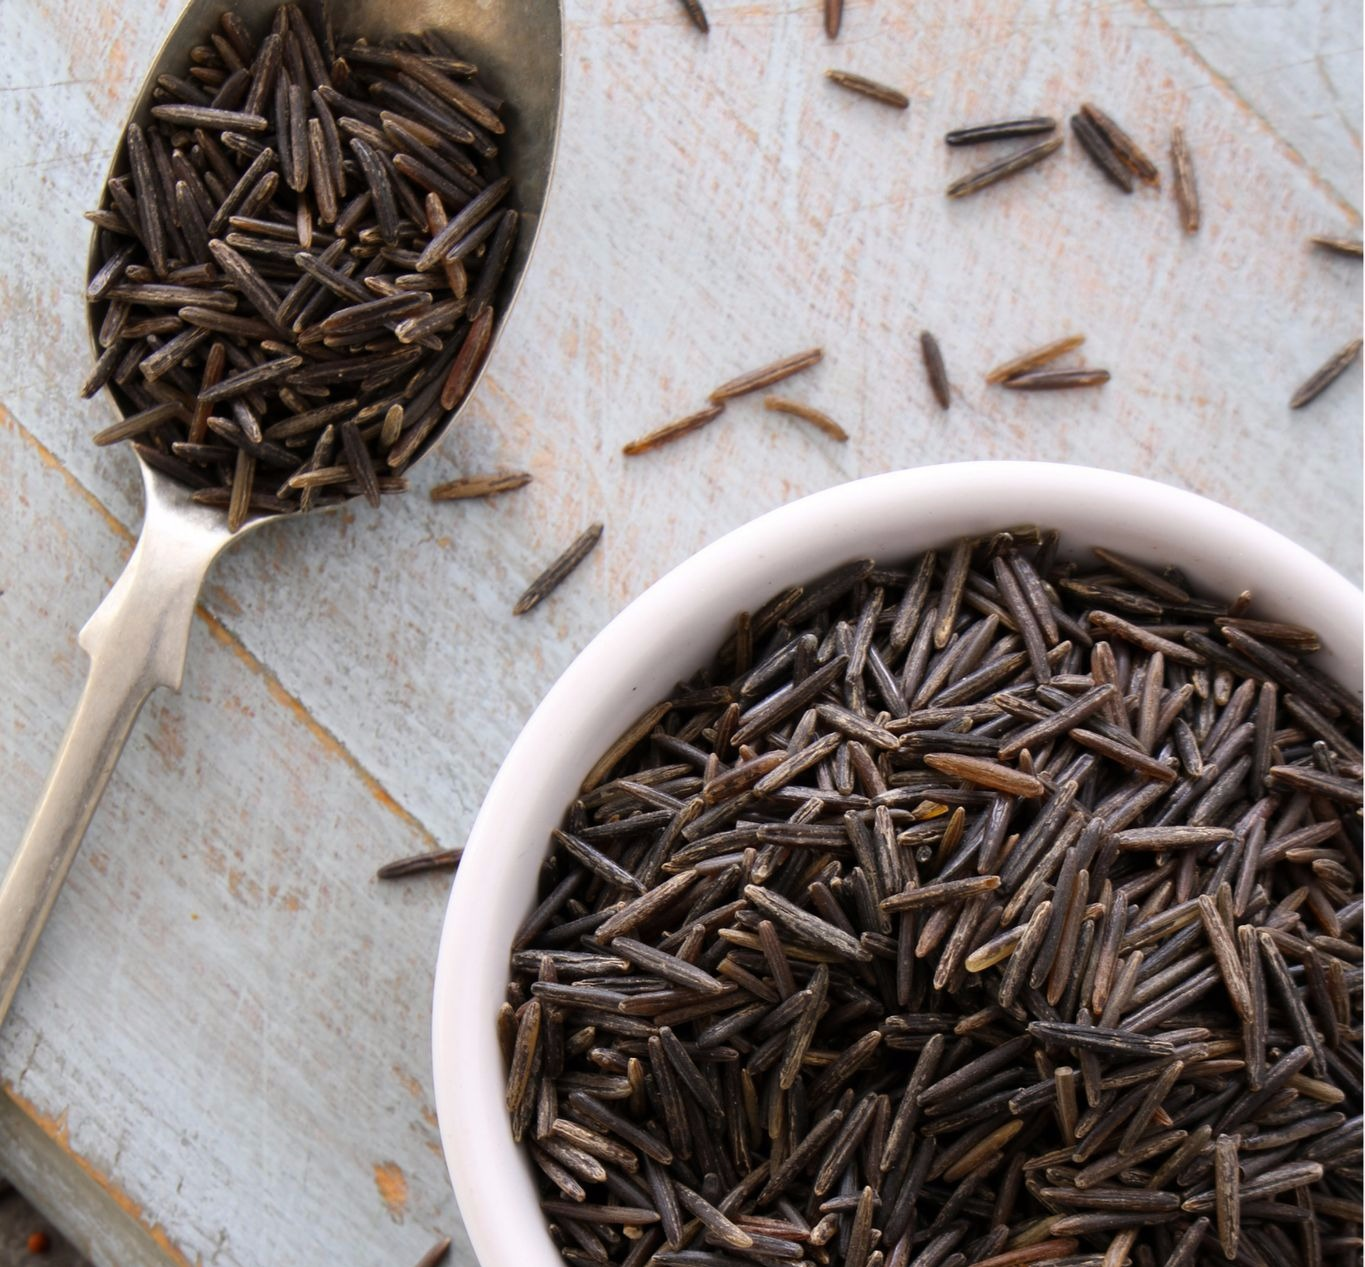 Wild rice is not rice at all, but in fact, a member of the grass family; a long, black grain, native to North America.